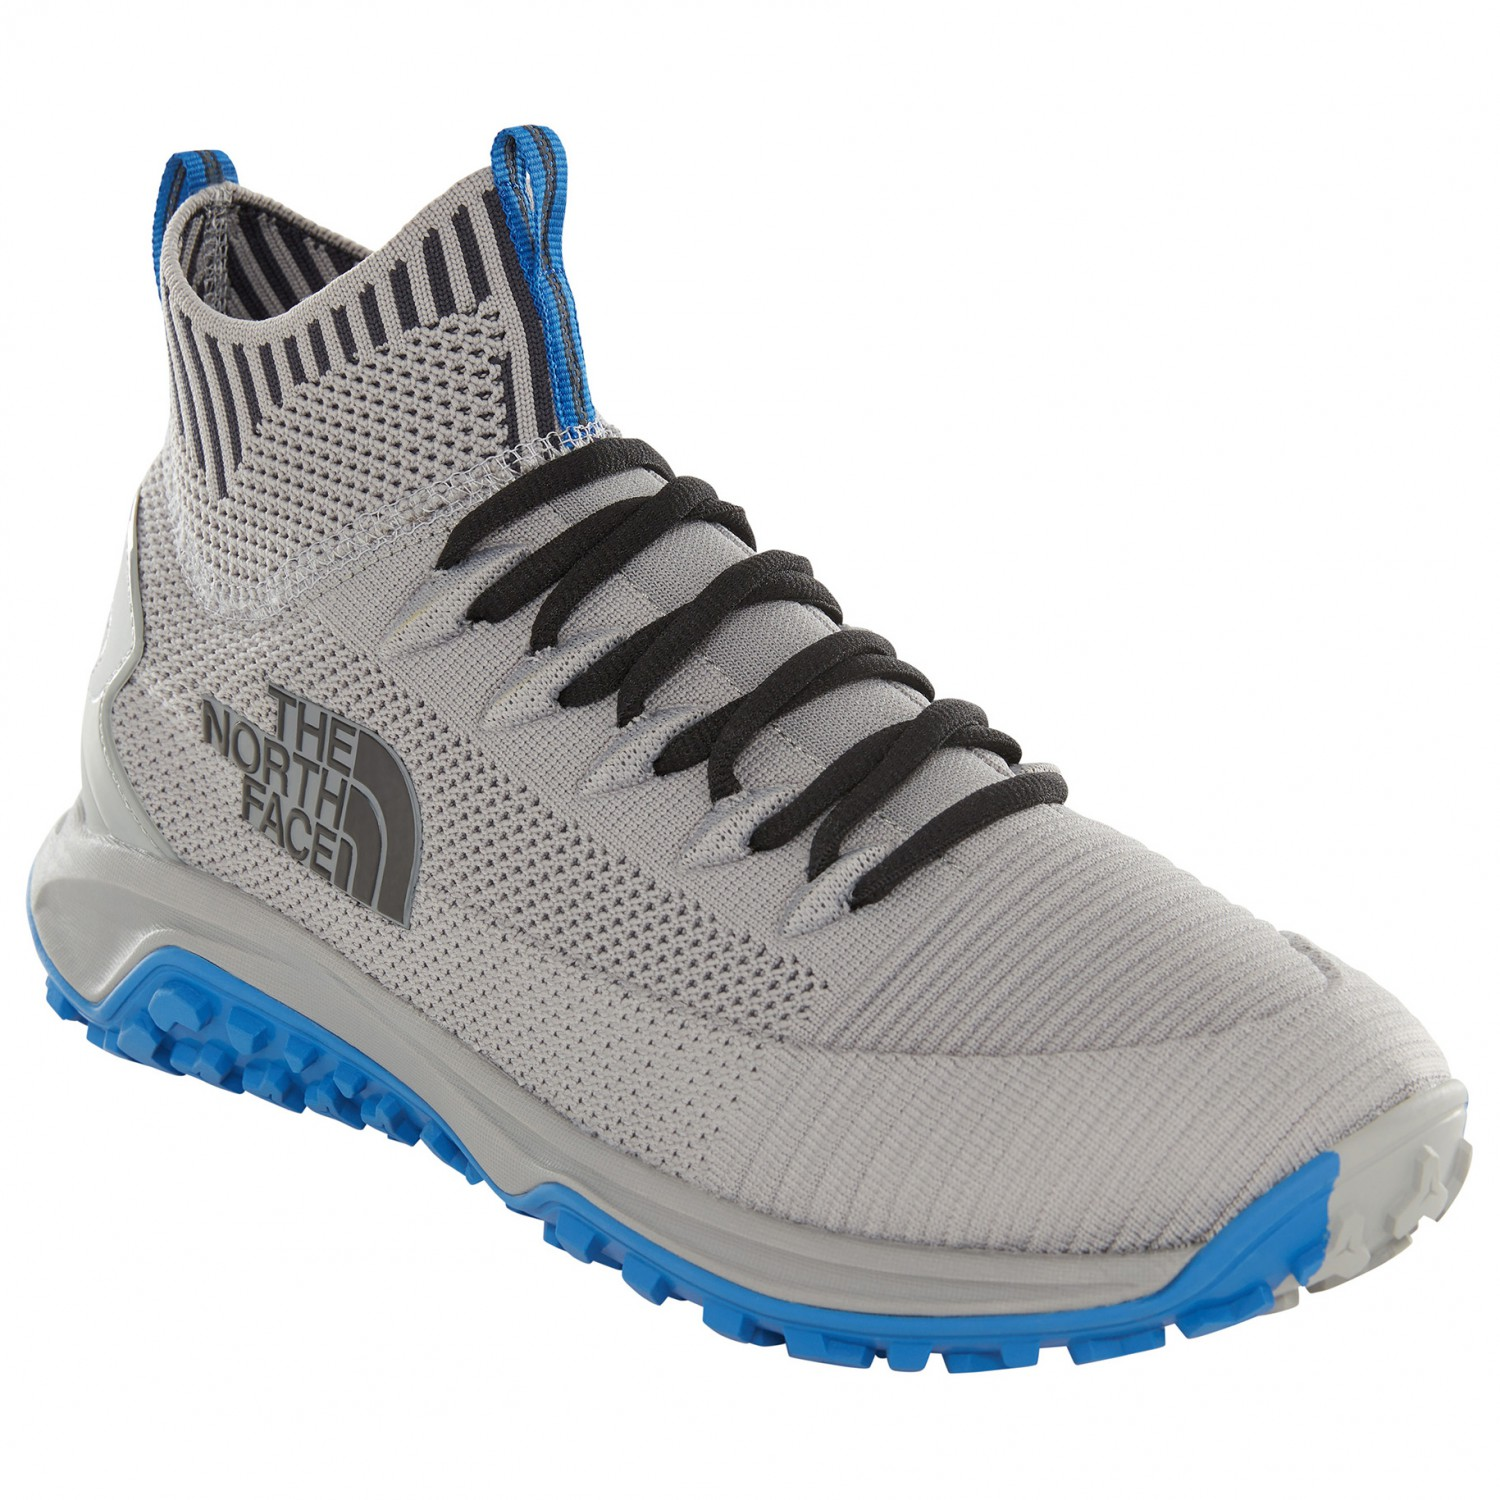 dce9dac6f The North Face - Truxel Mid - Multisport shoes - Griffin Grey / Monster  Blue | 10,5 (US)